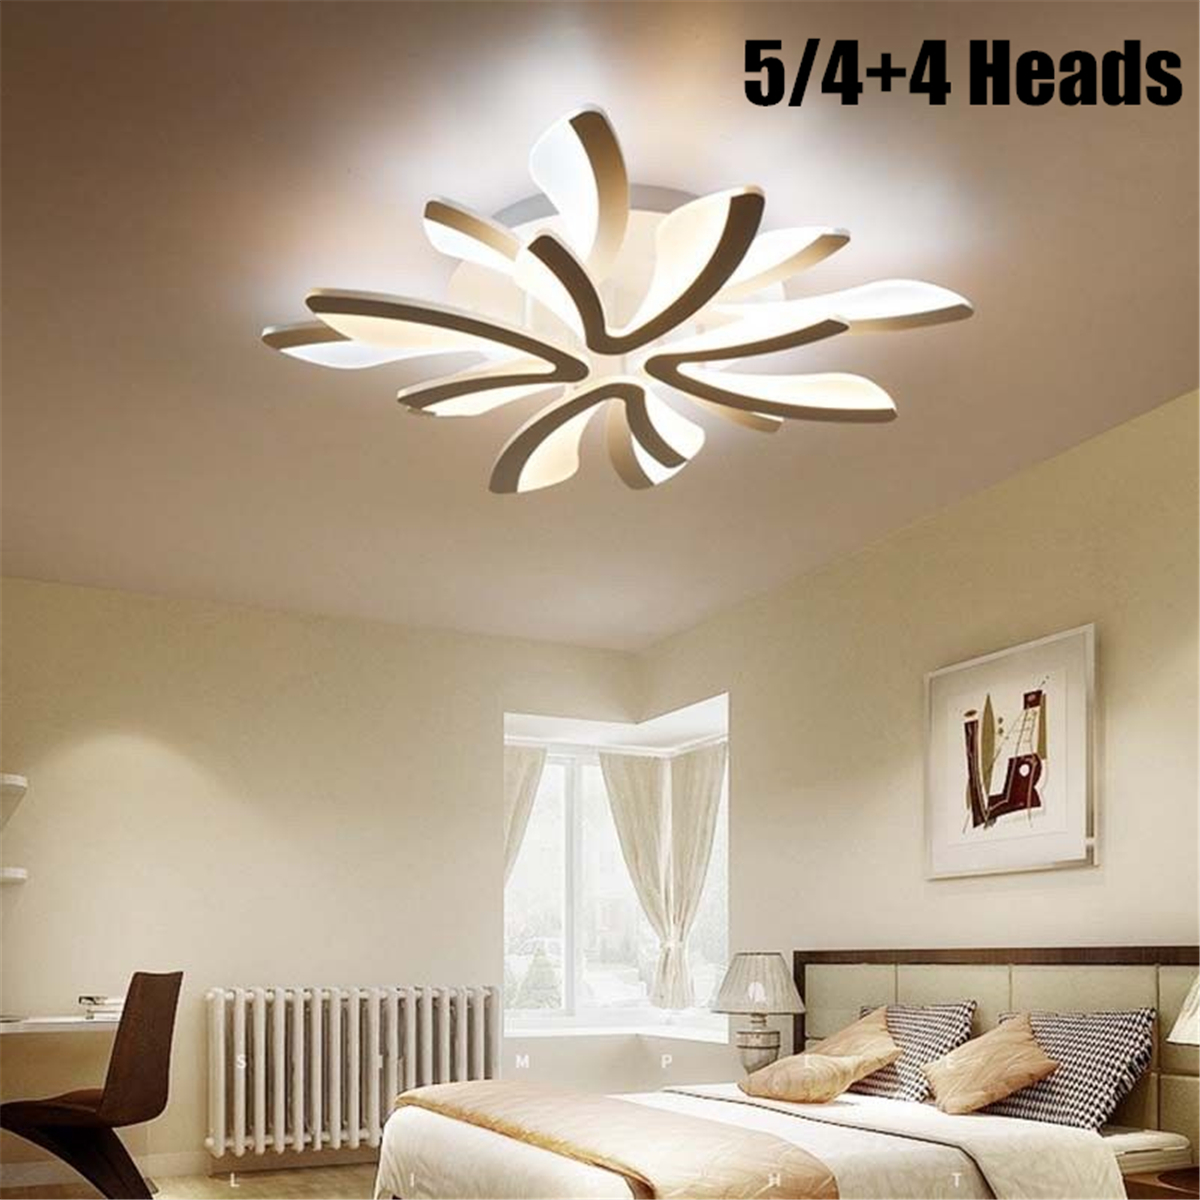 Details about 5/8 Head Dandelion Modern LED Acrylic Ceiling Light  Chandeliers Living Room